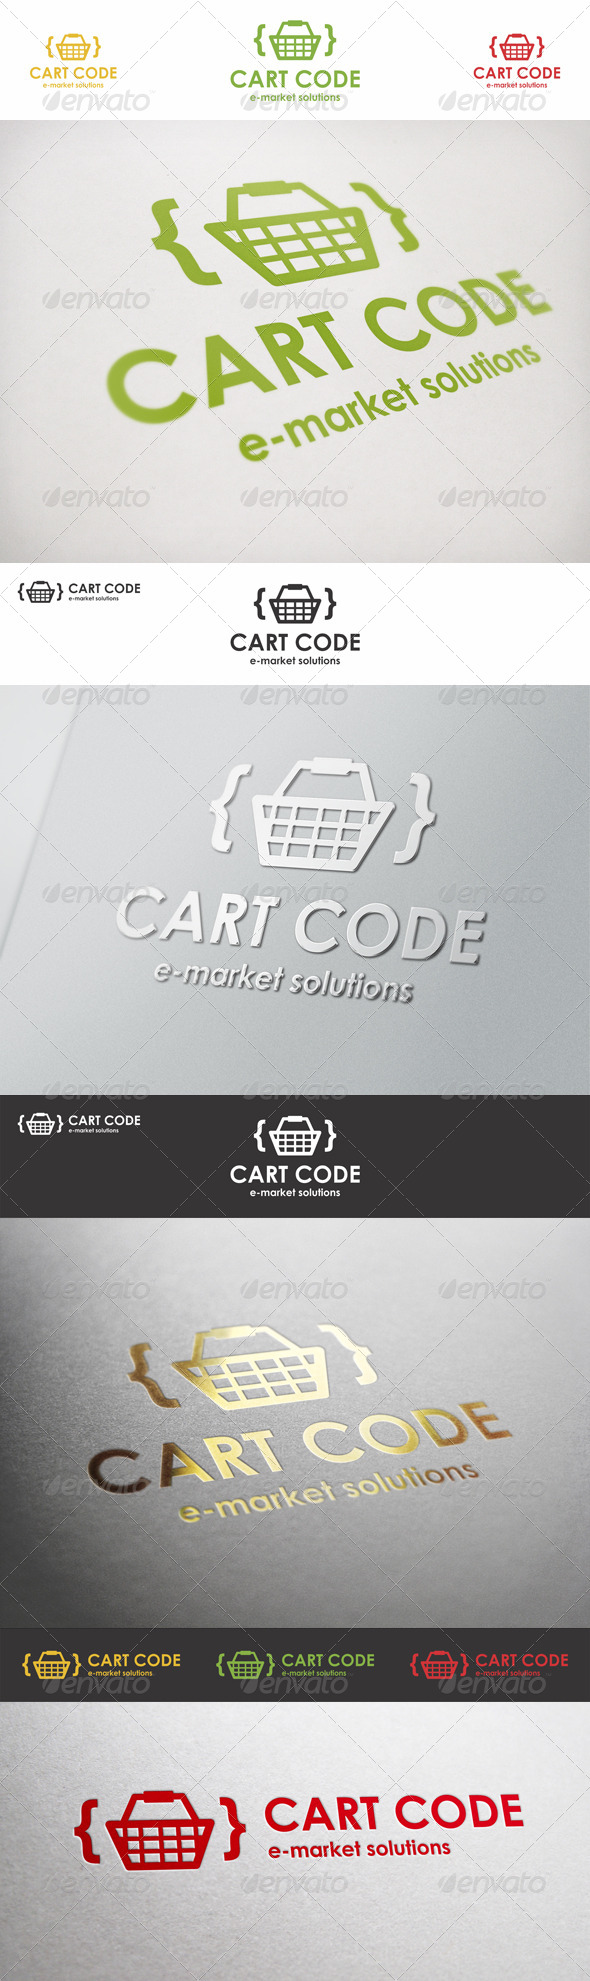 Cart Code E-Market Logo - Vector Abstract